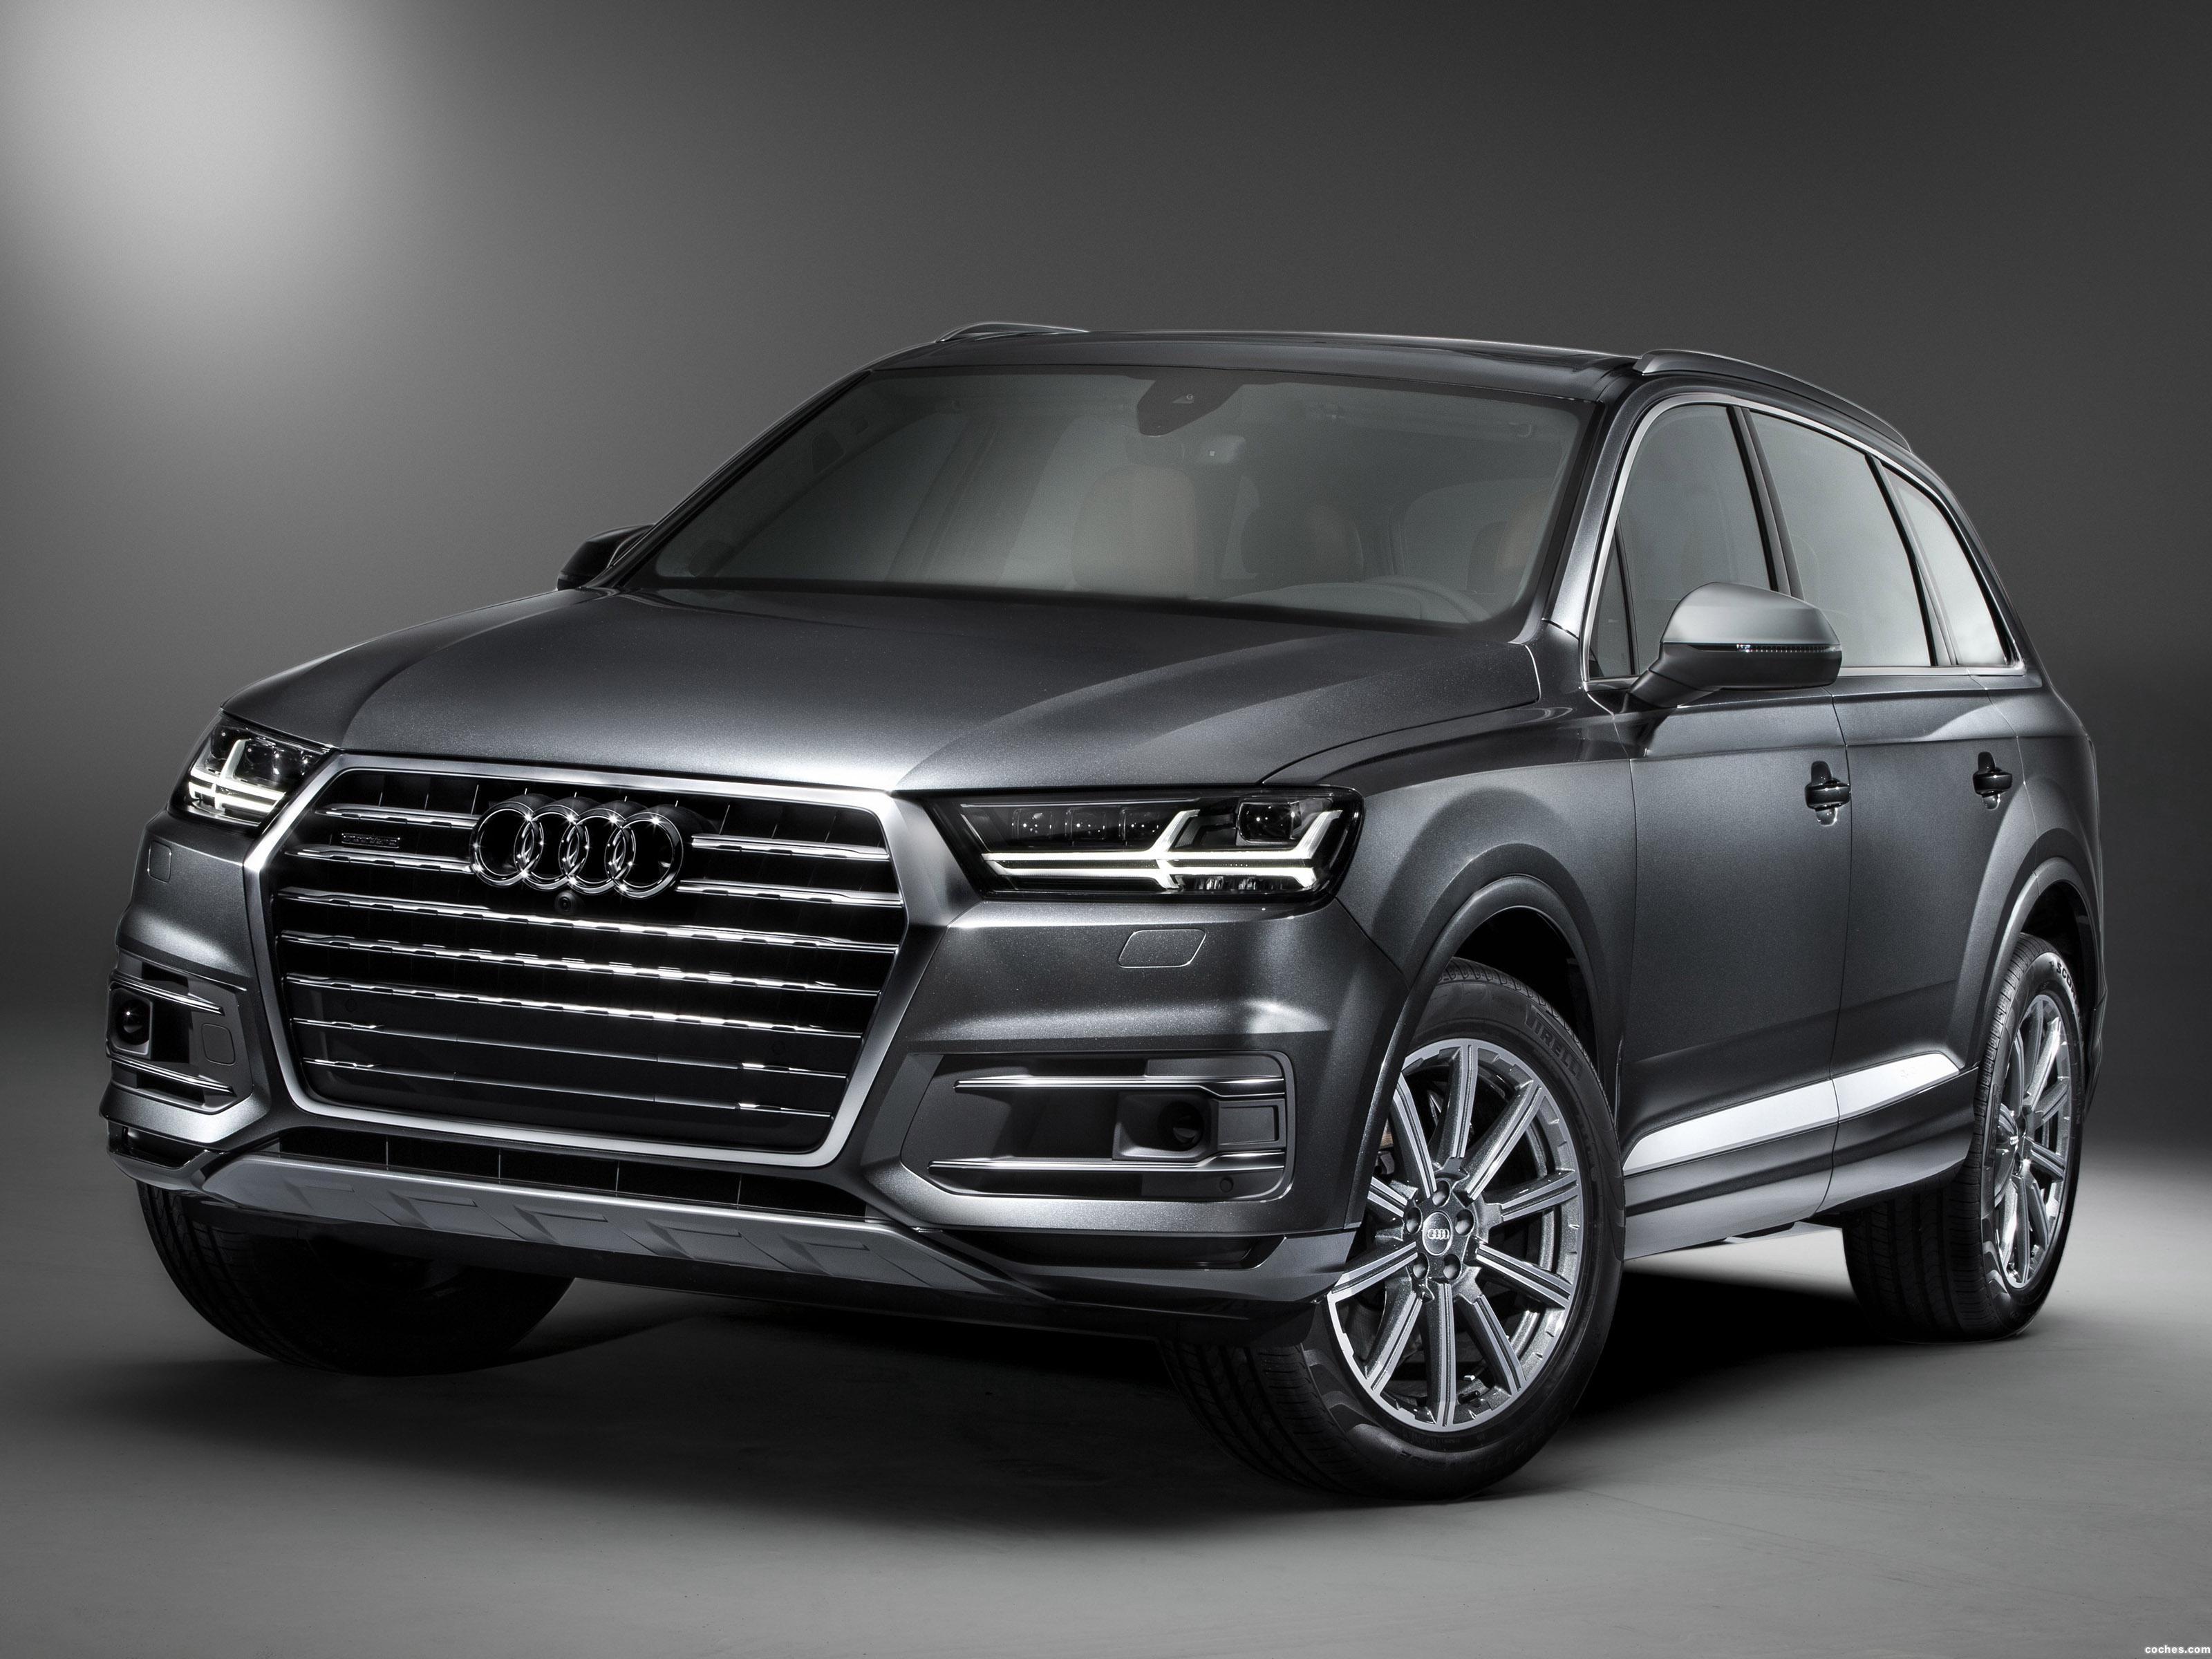 fotos de audi q7 tdi quattro 2015. Black Bedroom Furniture Sets. Home Design Ideas